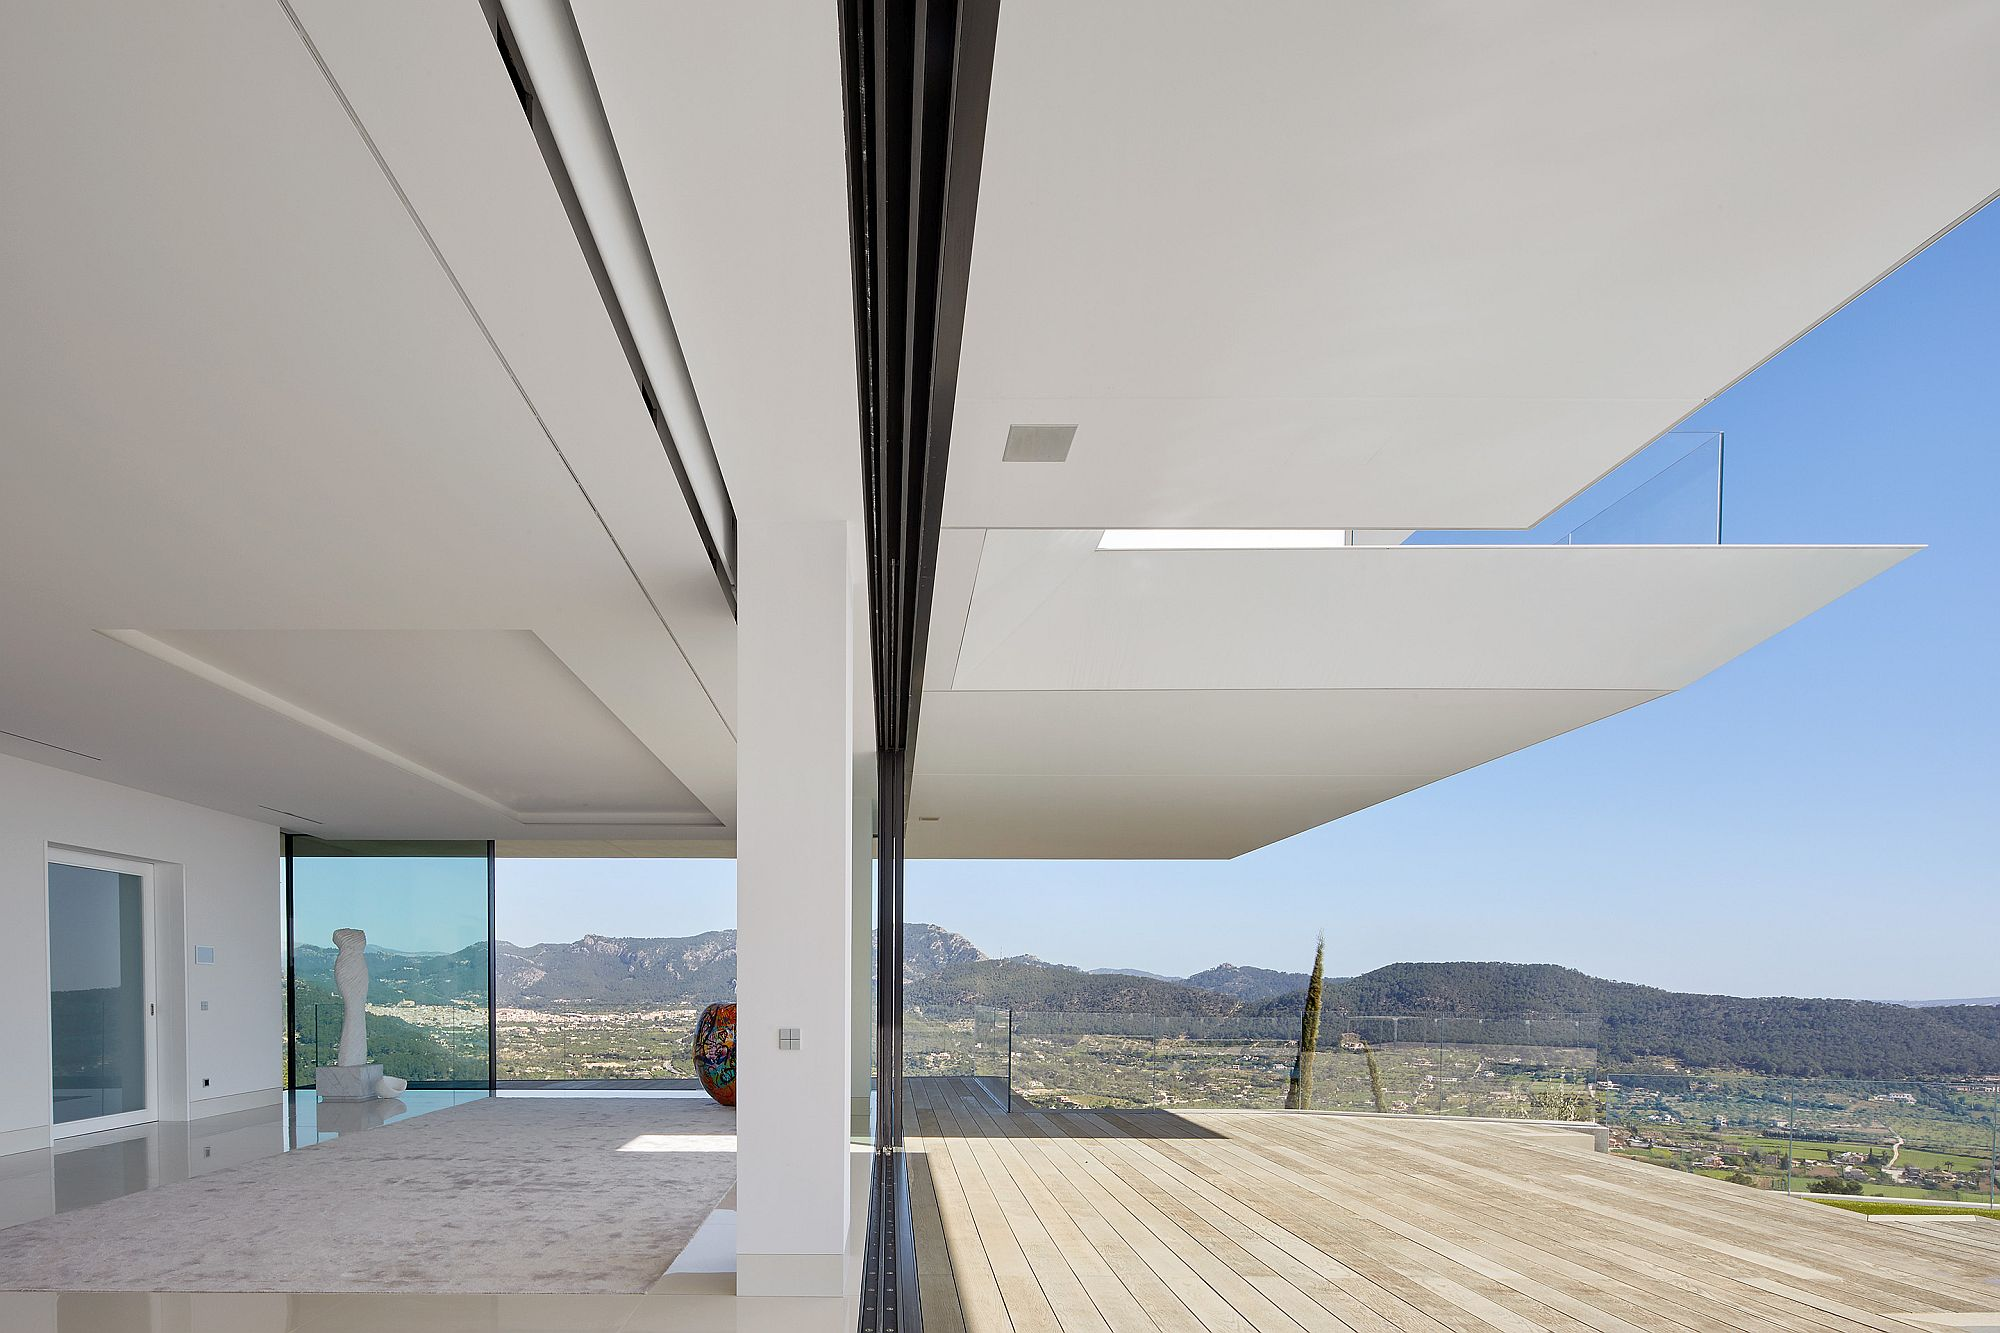 Large-Overhangs-in-KRION-Solid-Surface-blur-the-line-between-the-structure-and-the-vast-open-outdoors